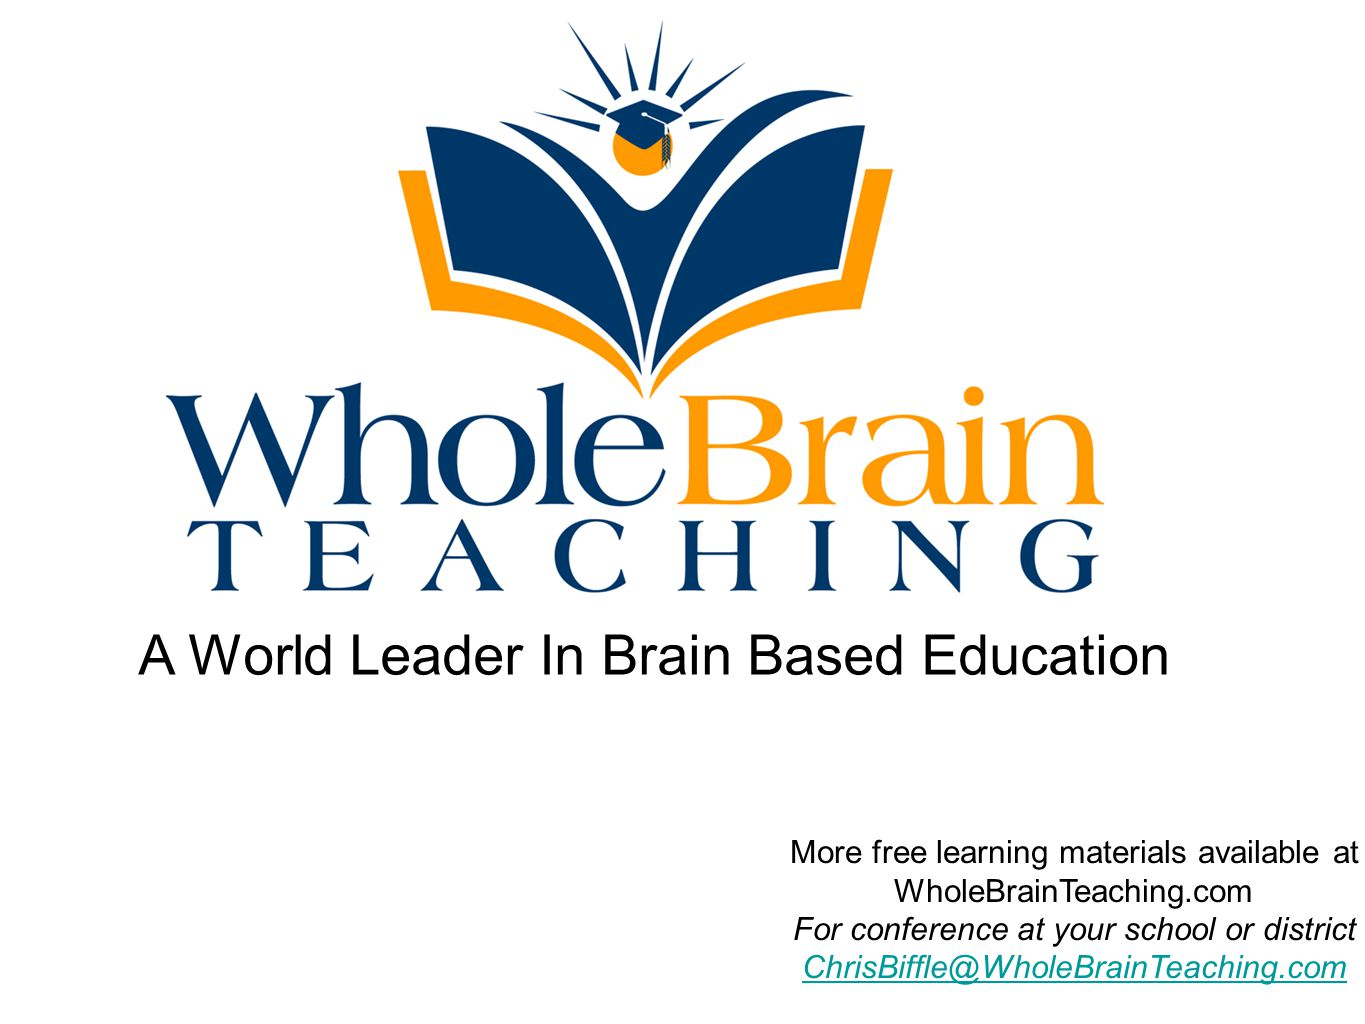 A World Leader In Brain Based Education More free learning materials available at WholeBrainTeaching.com For conference at your school or district ChrisBiffle@WholeBrainTeaching.com